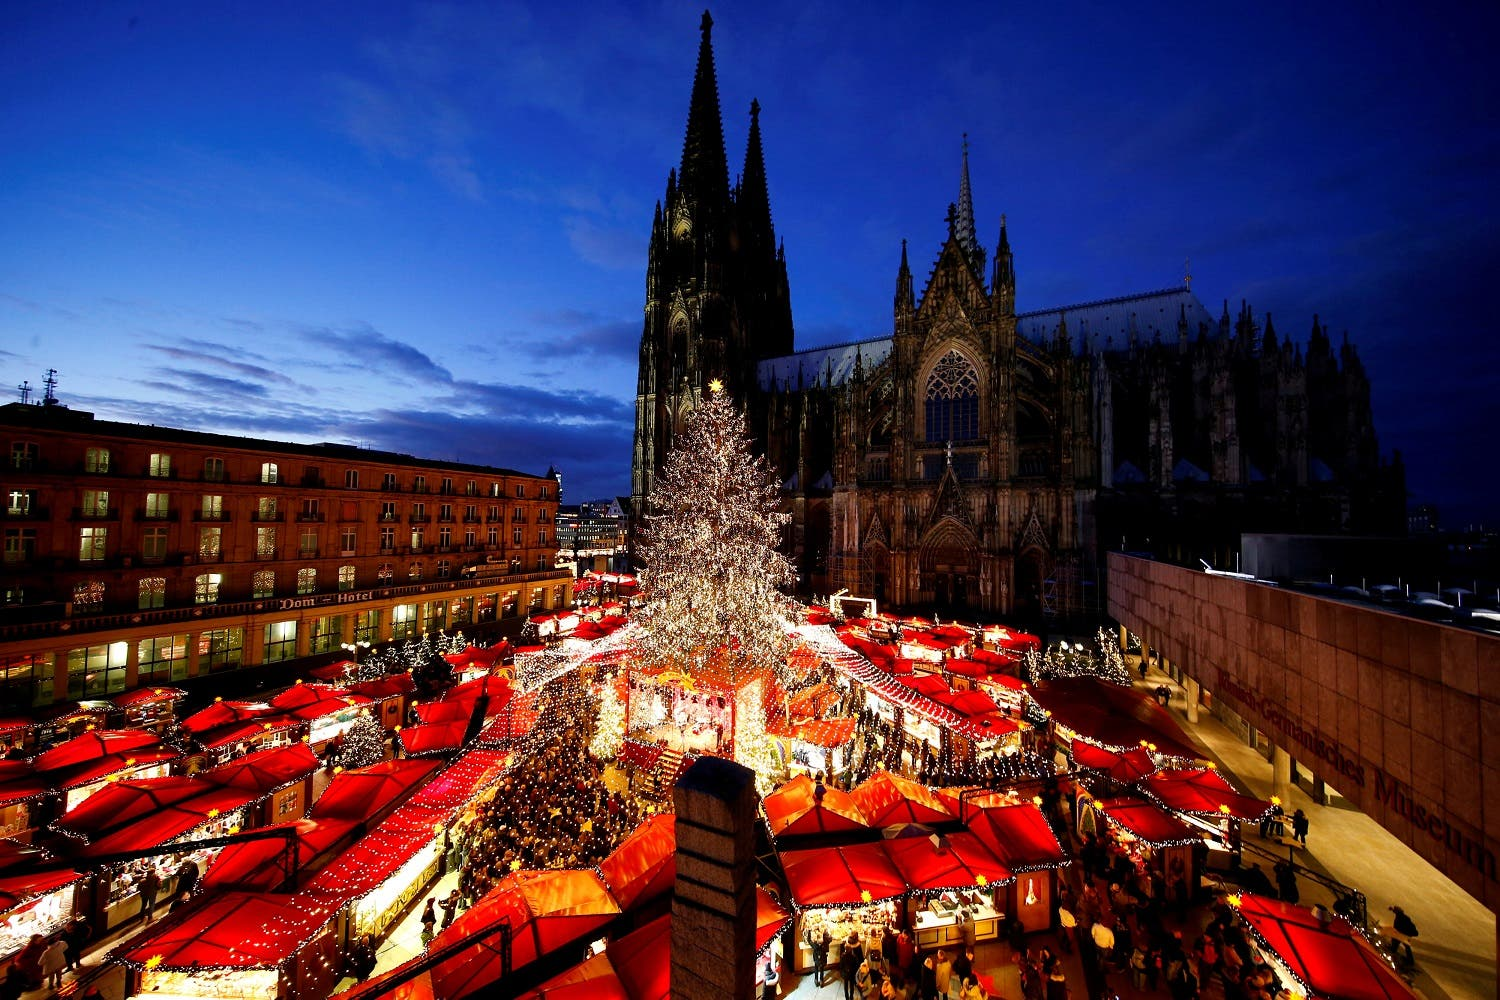 A general view of the Christmas market on the square in front of the world famous gothic cathedral in Cologne, Germany, November 28, 2017. (Reuters)